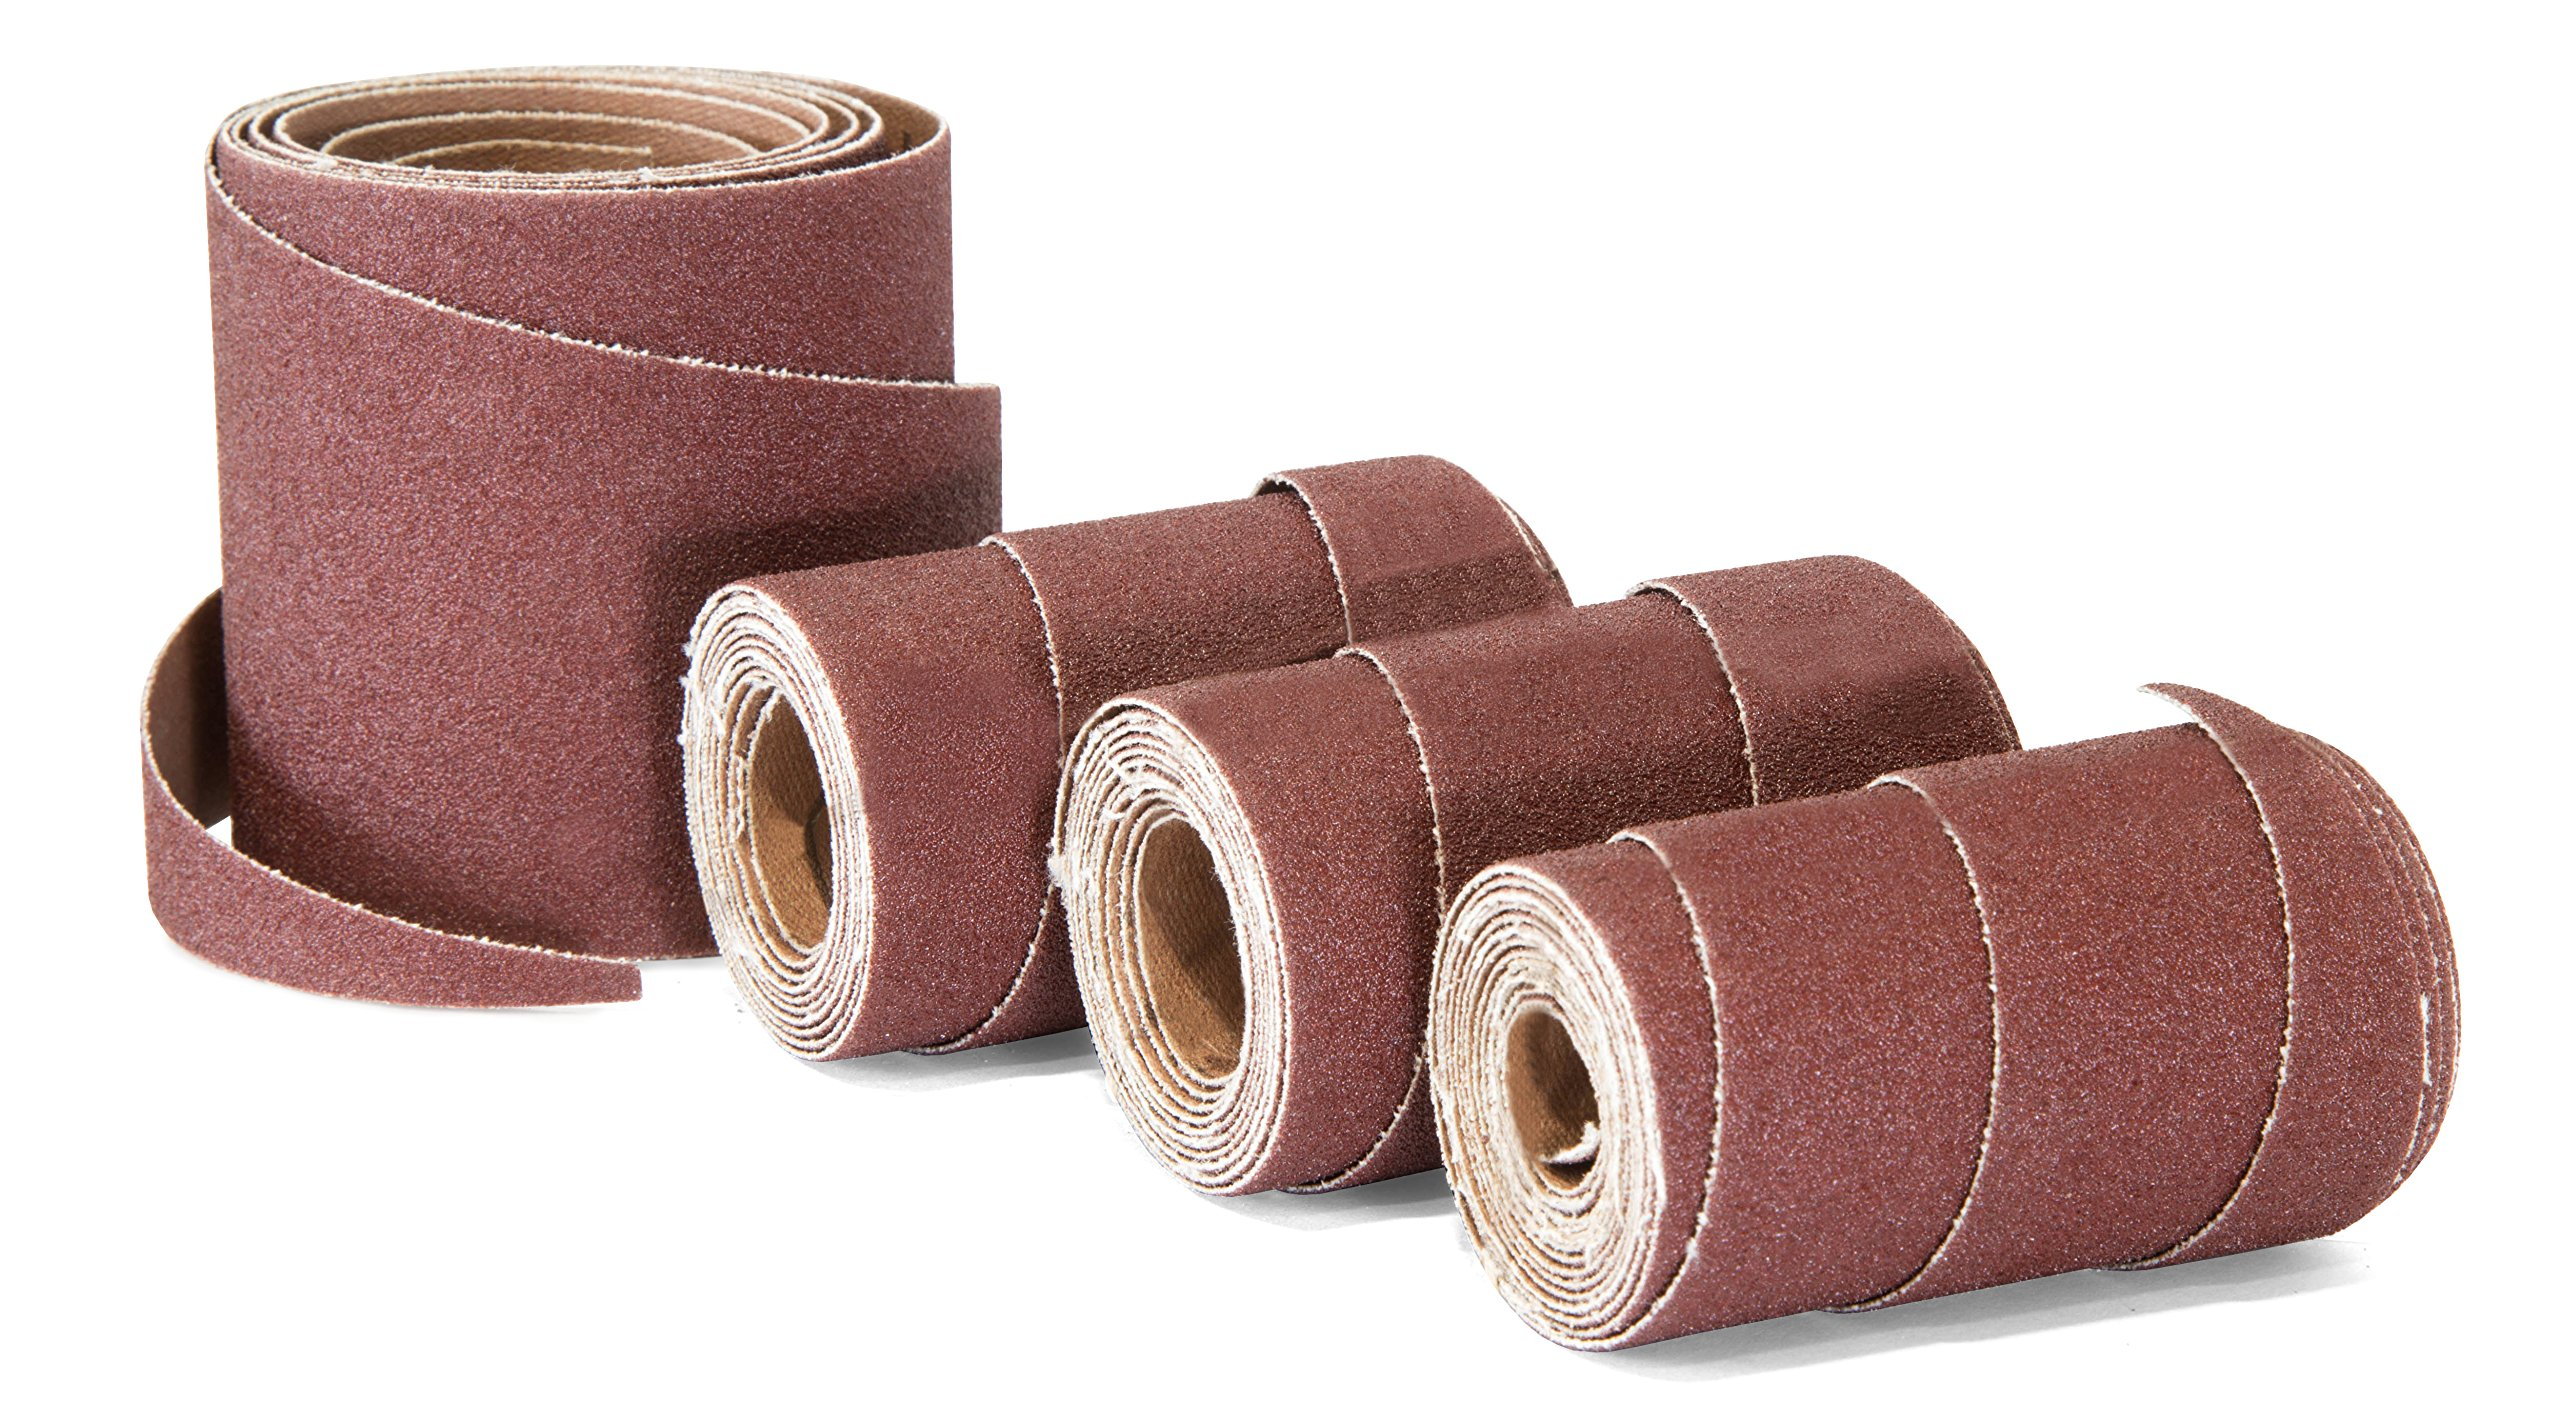 WEN 65910SP120 120-Grit 10-Inch Pre-Cut Ready-to-Wrap Drum Sander Sandpaper, 4-Pack